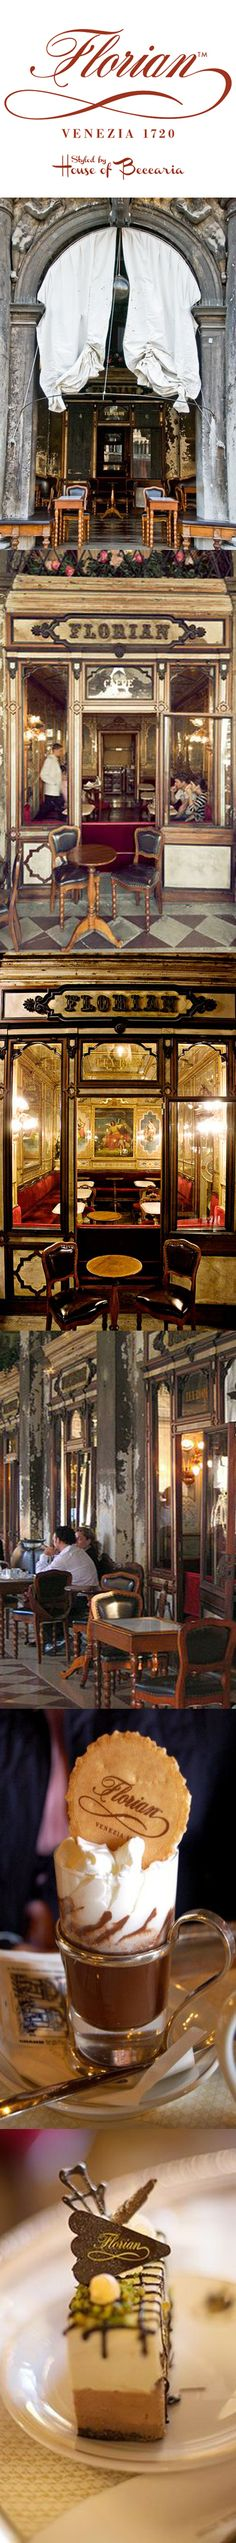 ~Caffè Florian in the Procuratie Nuove of Piazza San Marco, Venice was established in 1720, and is the oldest coffee house in the world | House of Beccaria